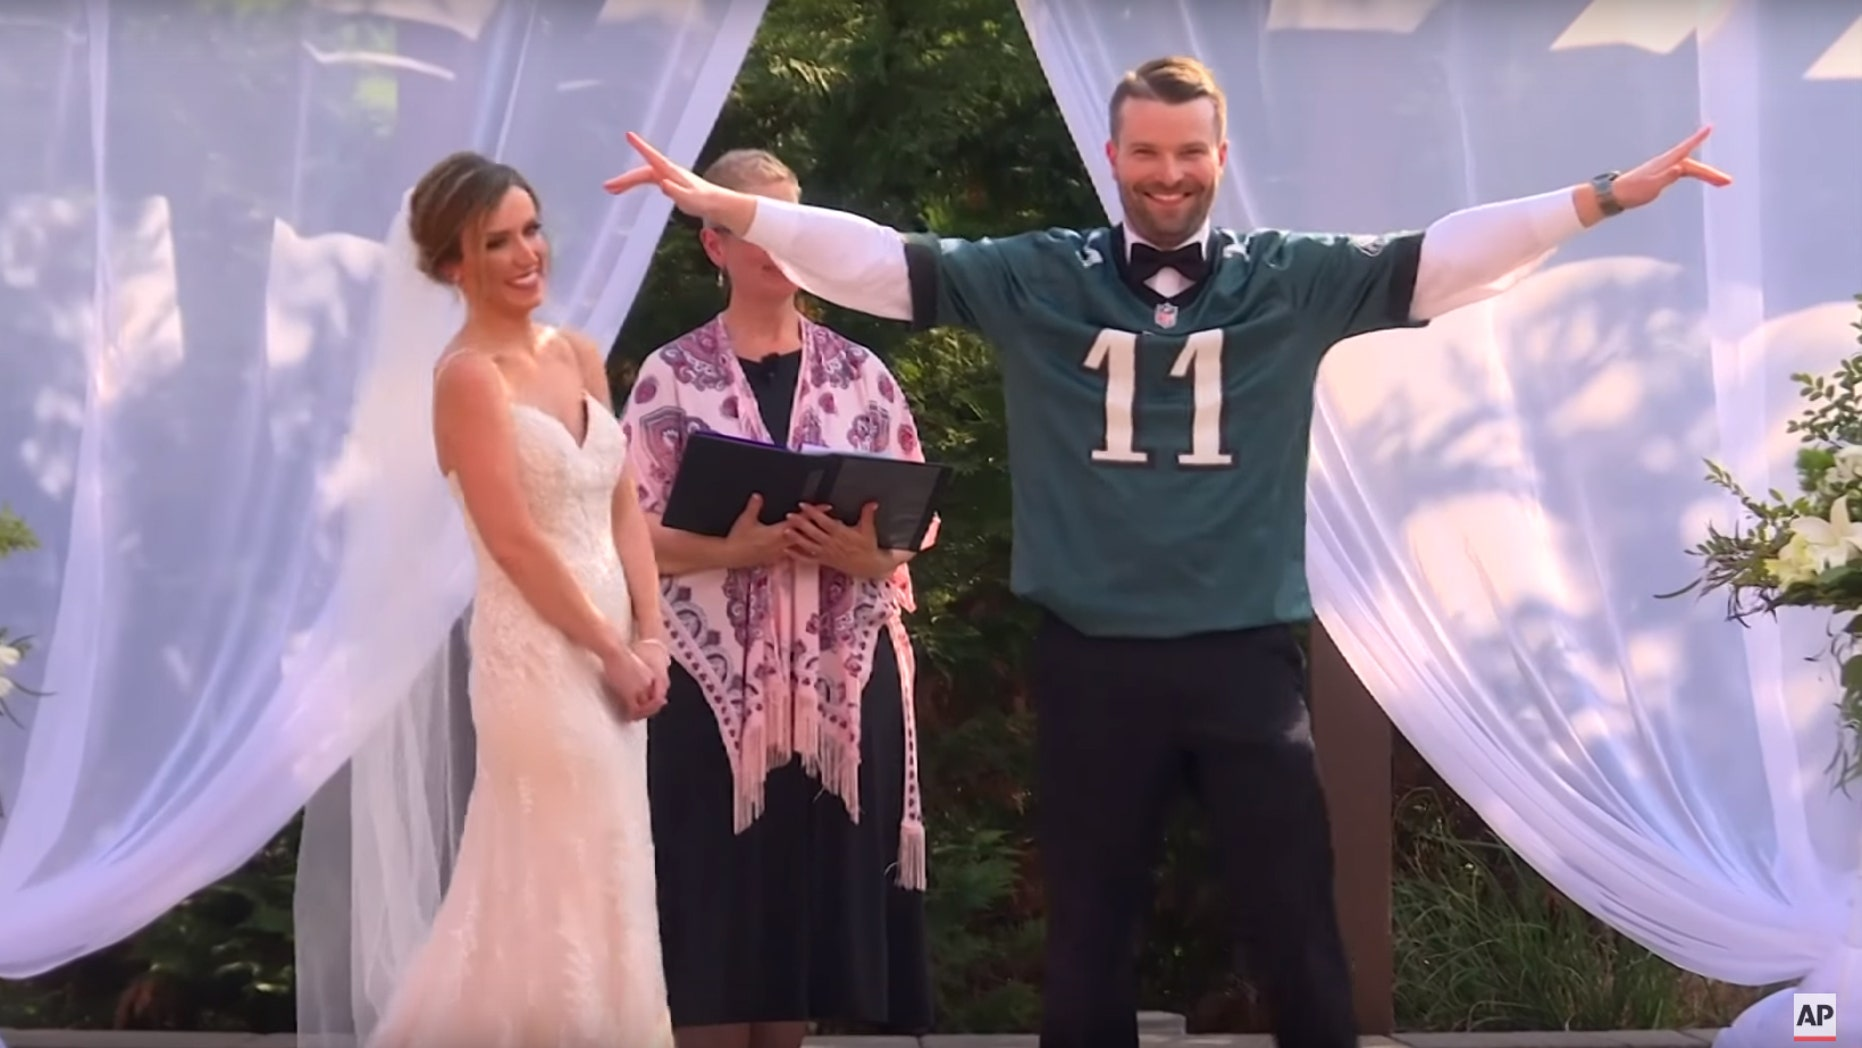 Jennifer Sullivan, in a gorgeous white gown, and Patrick Hanks, in Carson Wentz jersey, tied the knot over Memorial Day weekend.